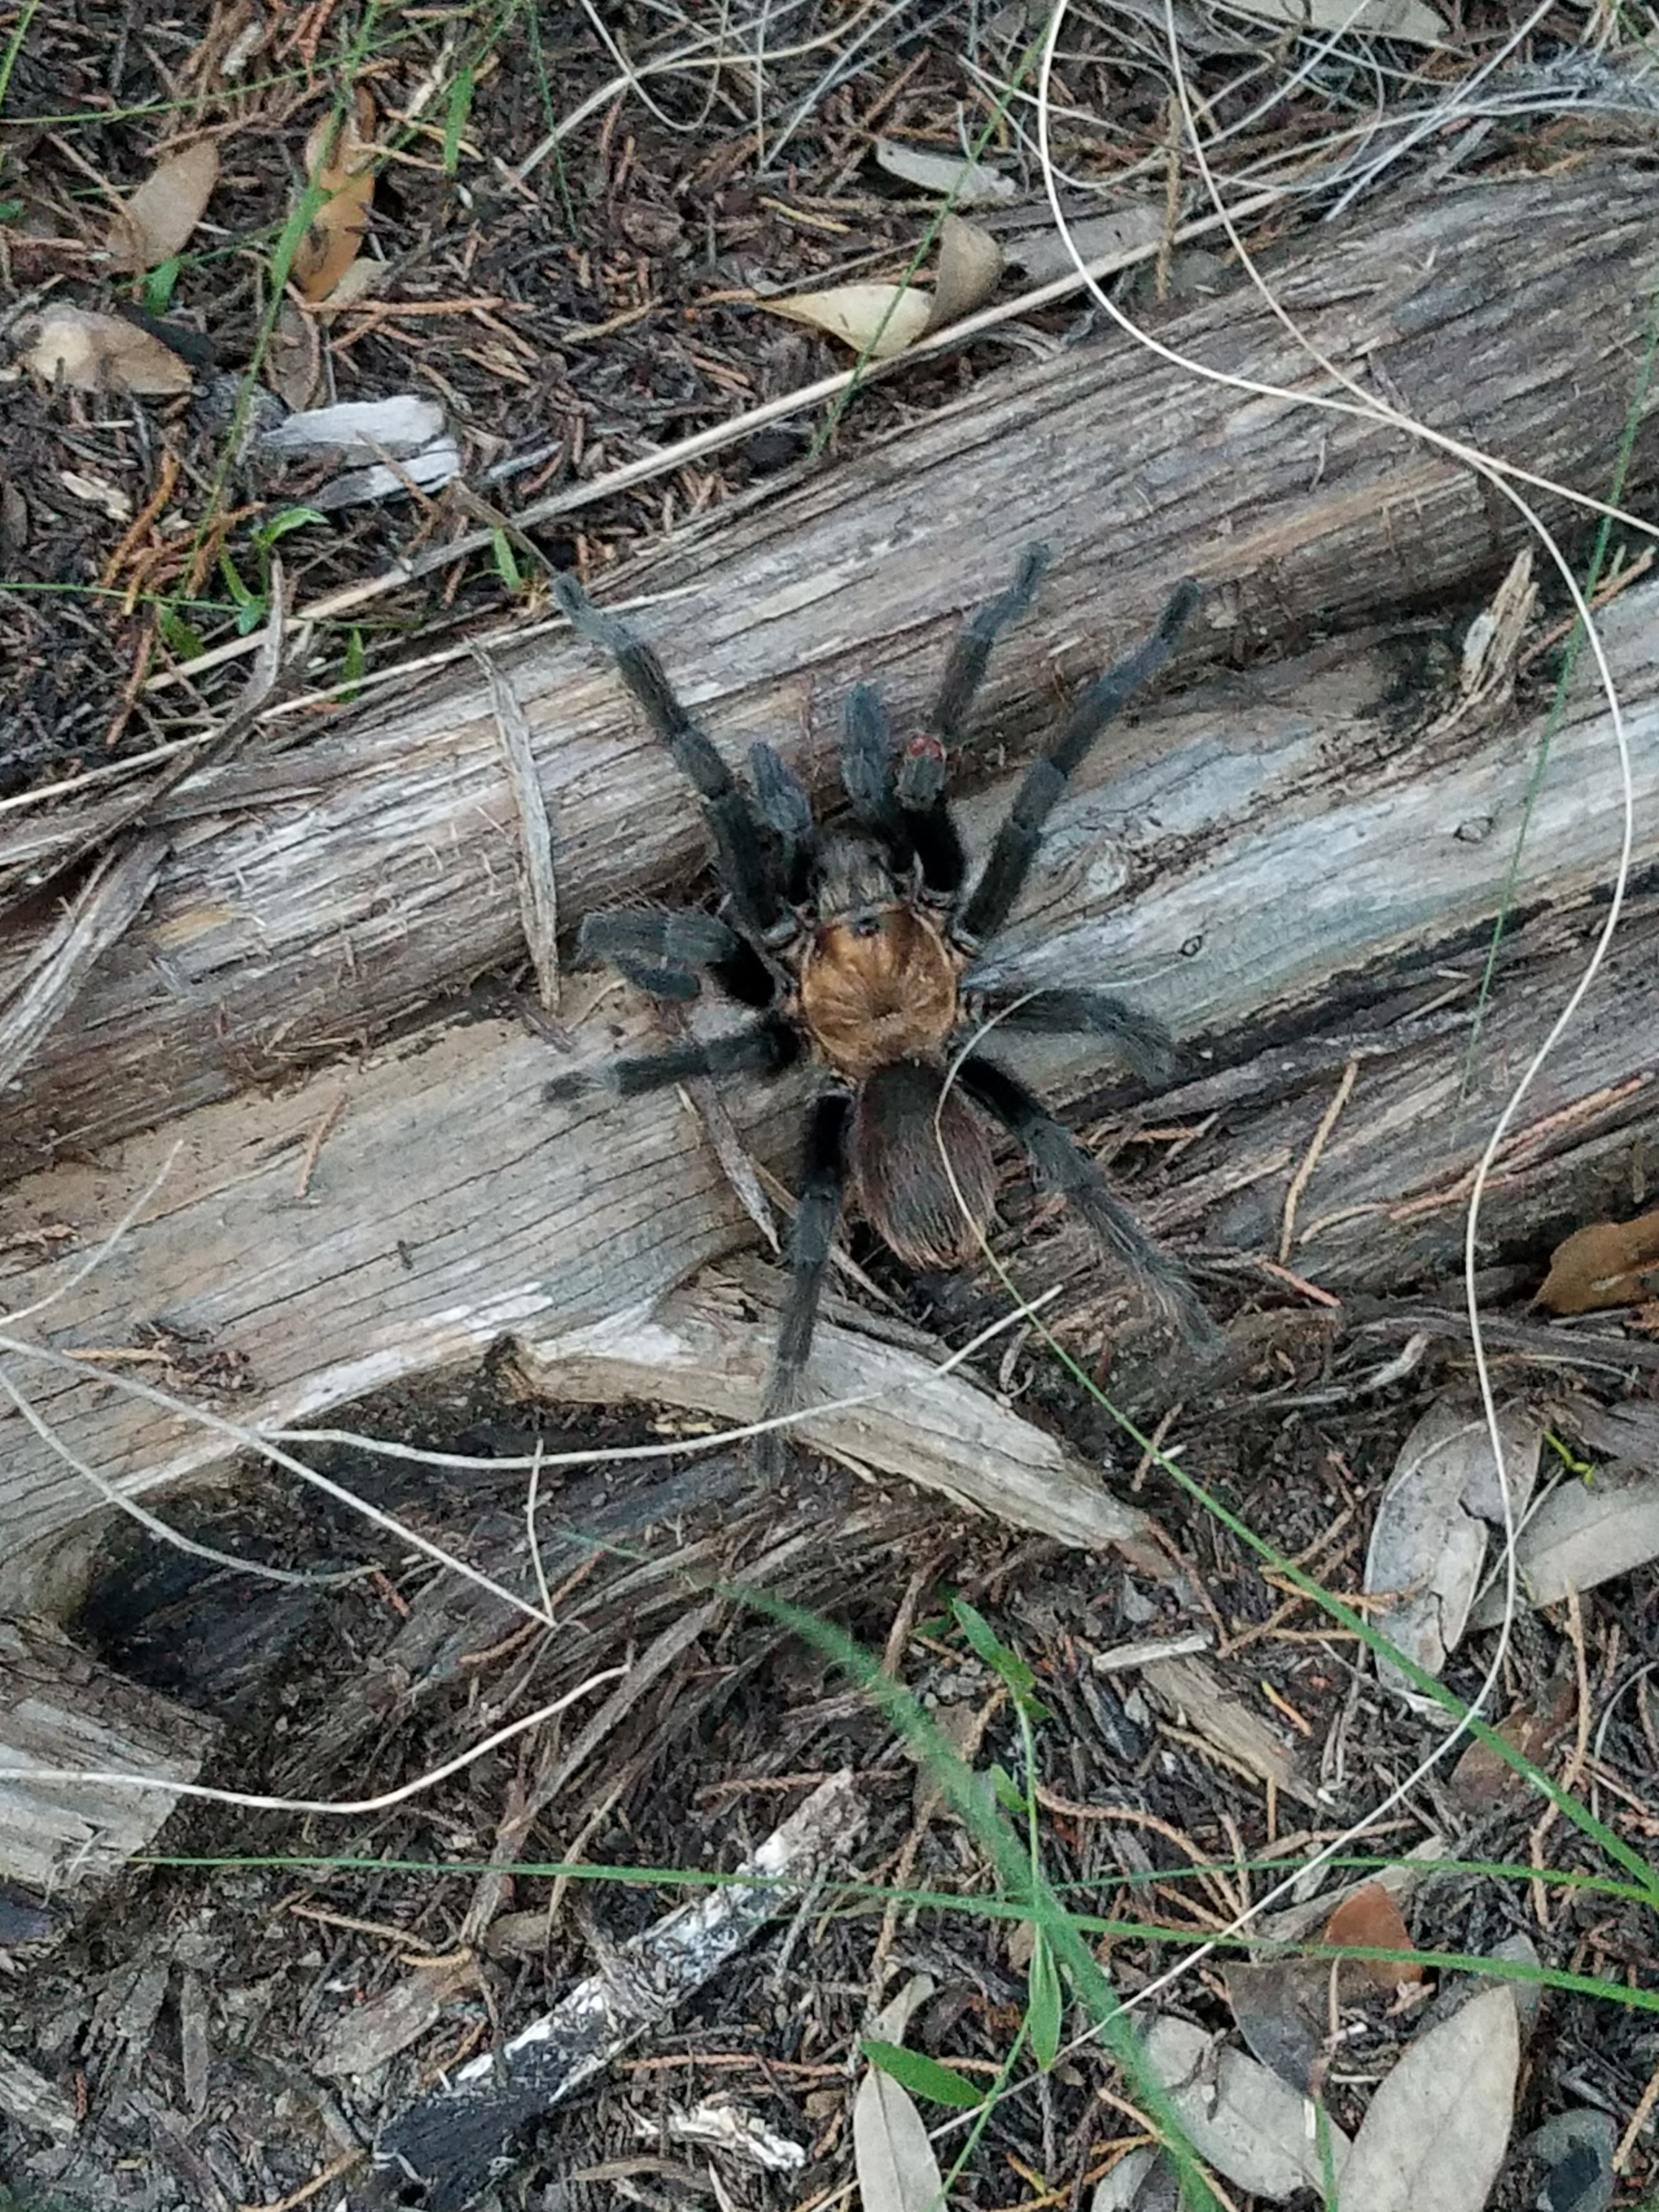 Is It True That Giant Tarantulas Are Invading Texas By The